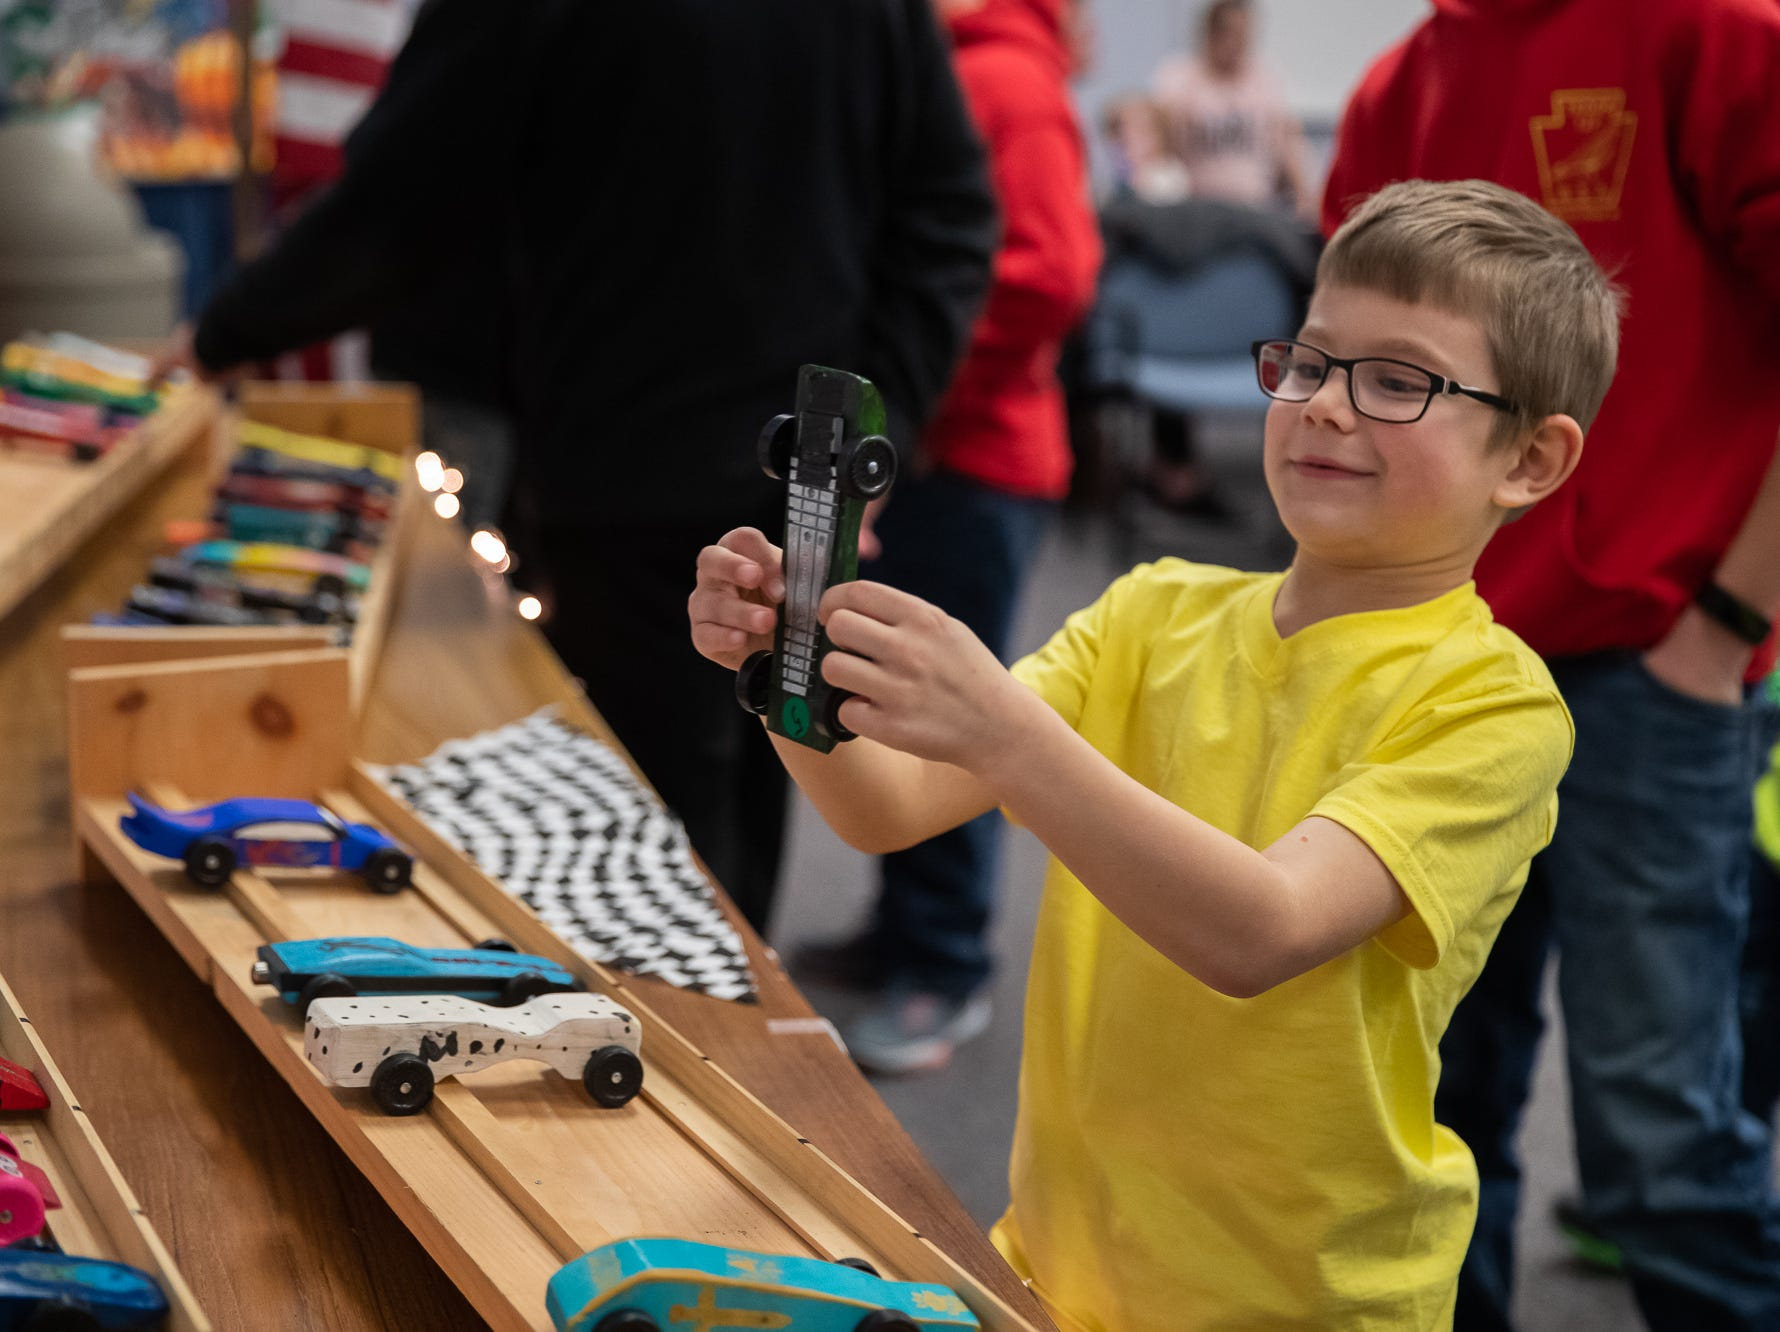 A cub scout looks at his pinewood car during the cub scouts pack 127 Pinewood Derby event at Lincoln Intermediate Unit 12, Sunday, Feb. 10 in New Oxford. The scouts had a month to design their custom pinewood cars to race in the event.